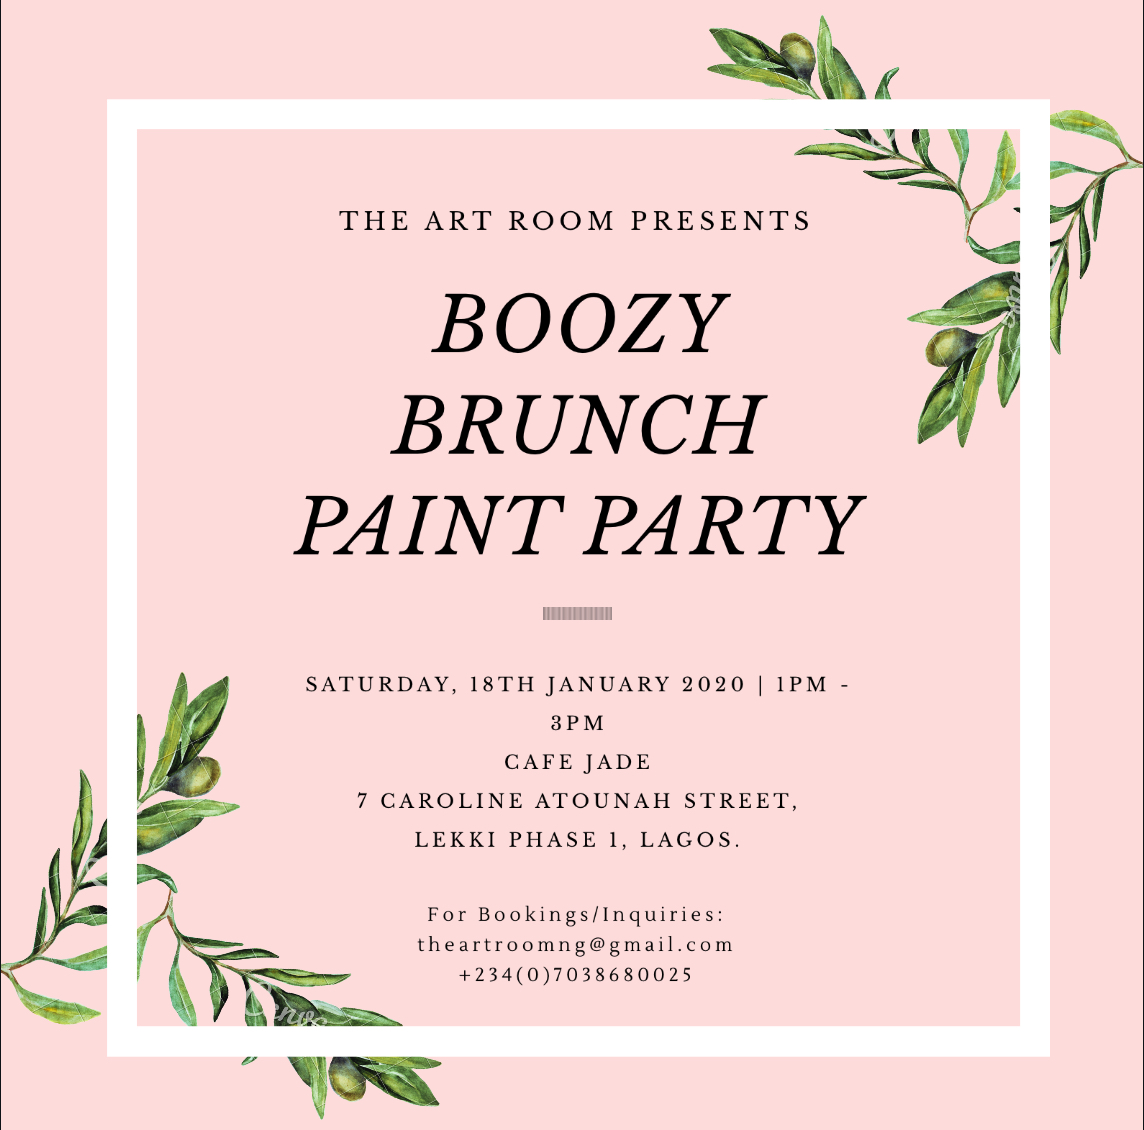 Boozy Brunch Paint Party Post free event in Nigeria using tickethub.ng, buy and sell tickets to event